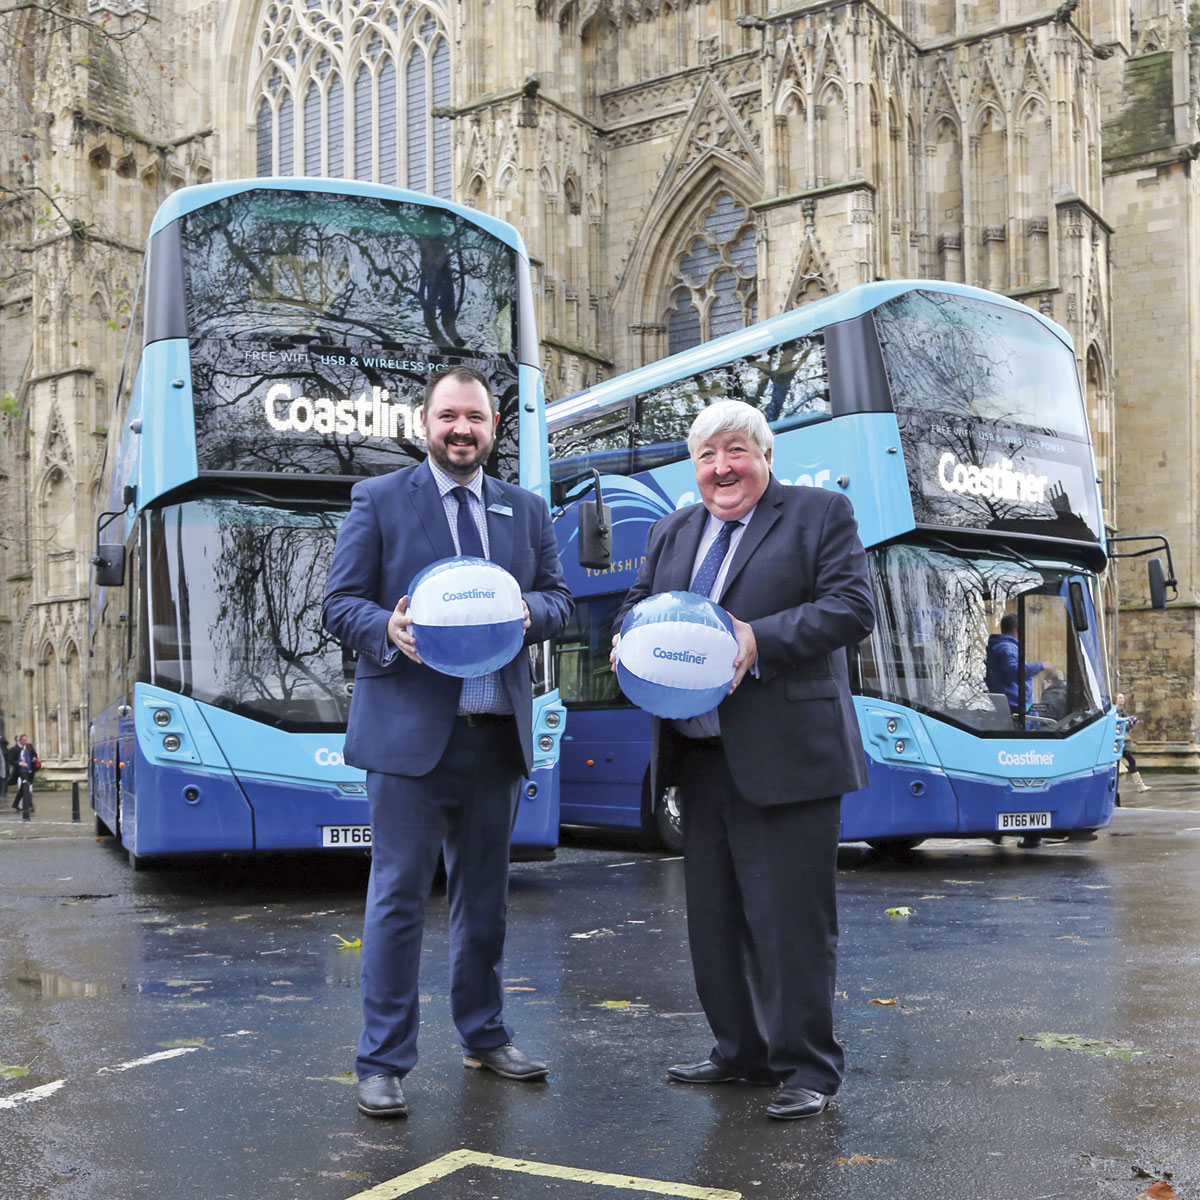 Transdev CEO, Alex Hornby and Executive Member for Transport and Planning at City of York Council, Councillor Ian Gillies with Coastliner beach balls